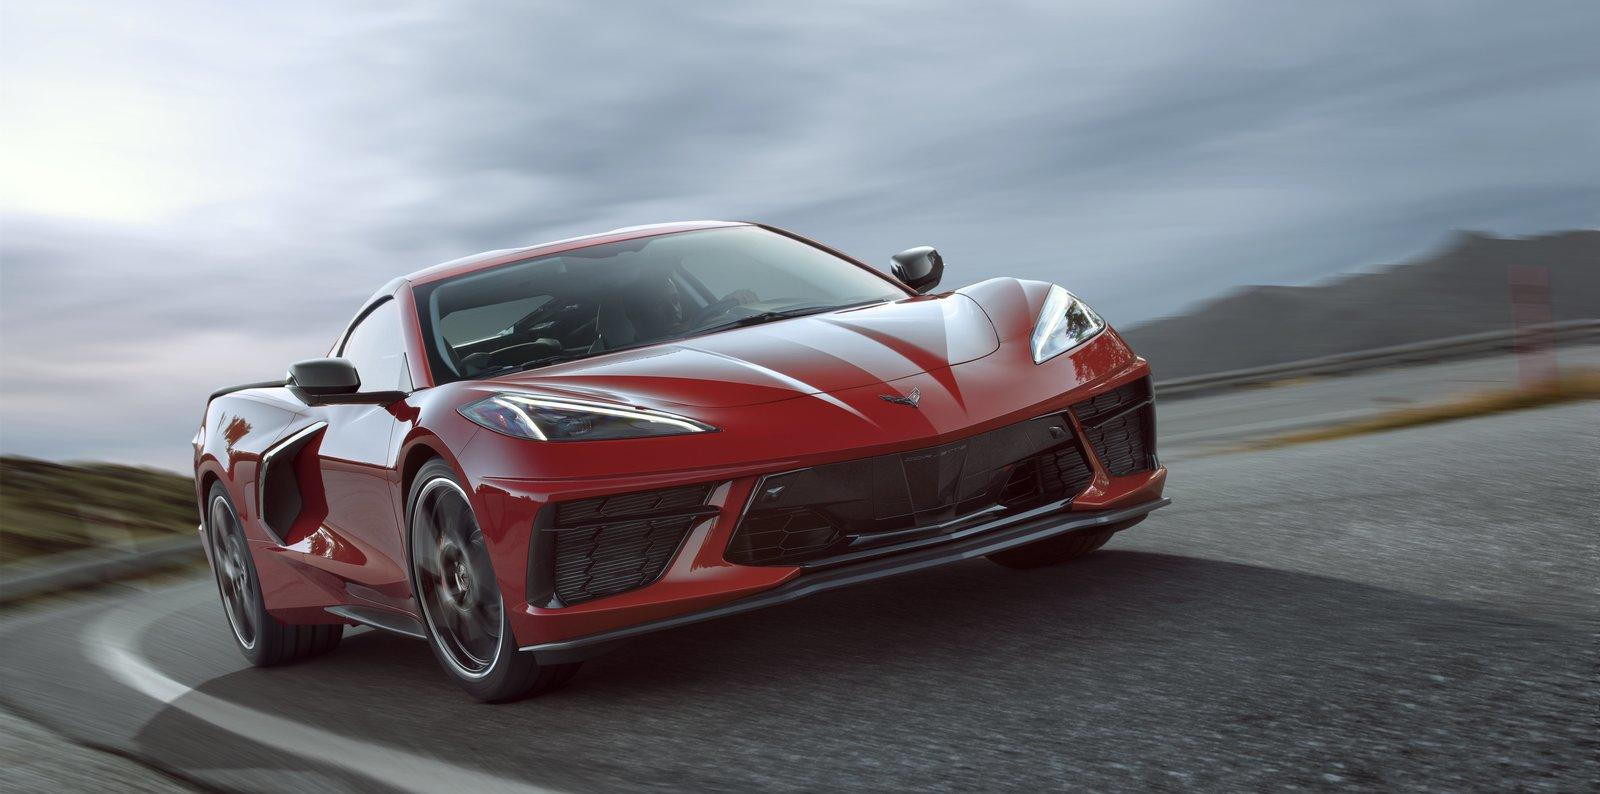 2020 Chevy C8 Corvette - Quirks And Facts Pictures, Photos ...